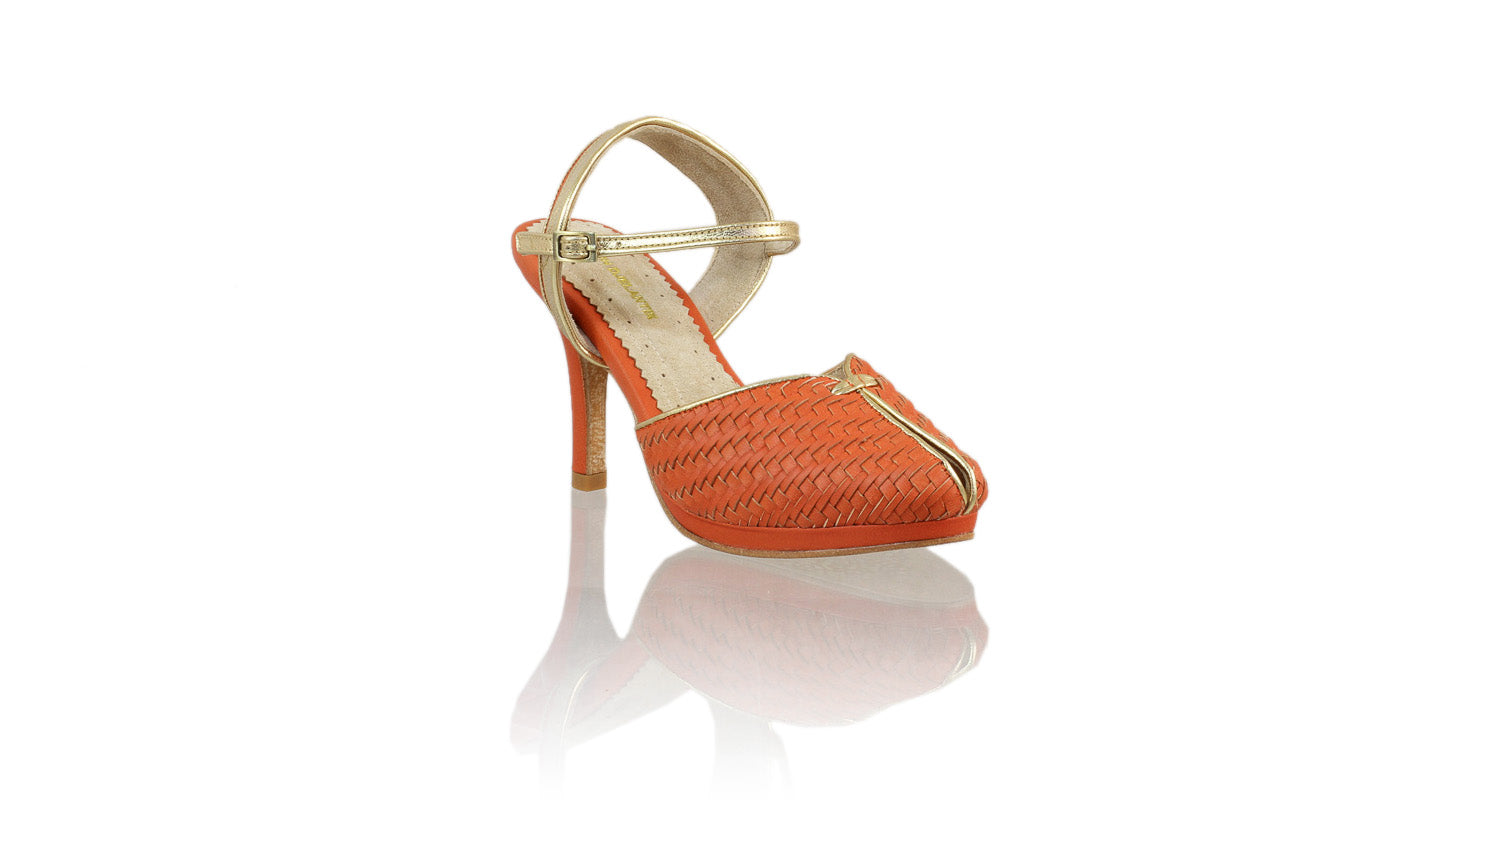 Leather-shoes-Agnes Woven 90mm SH-01 PF - Orange & Gold-pumps highheel-NILUH DJELANTIK-NILUH DJELANTIK